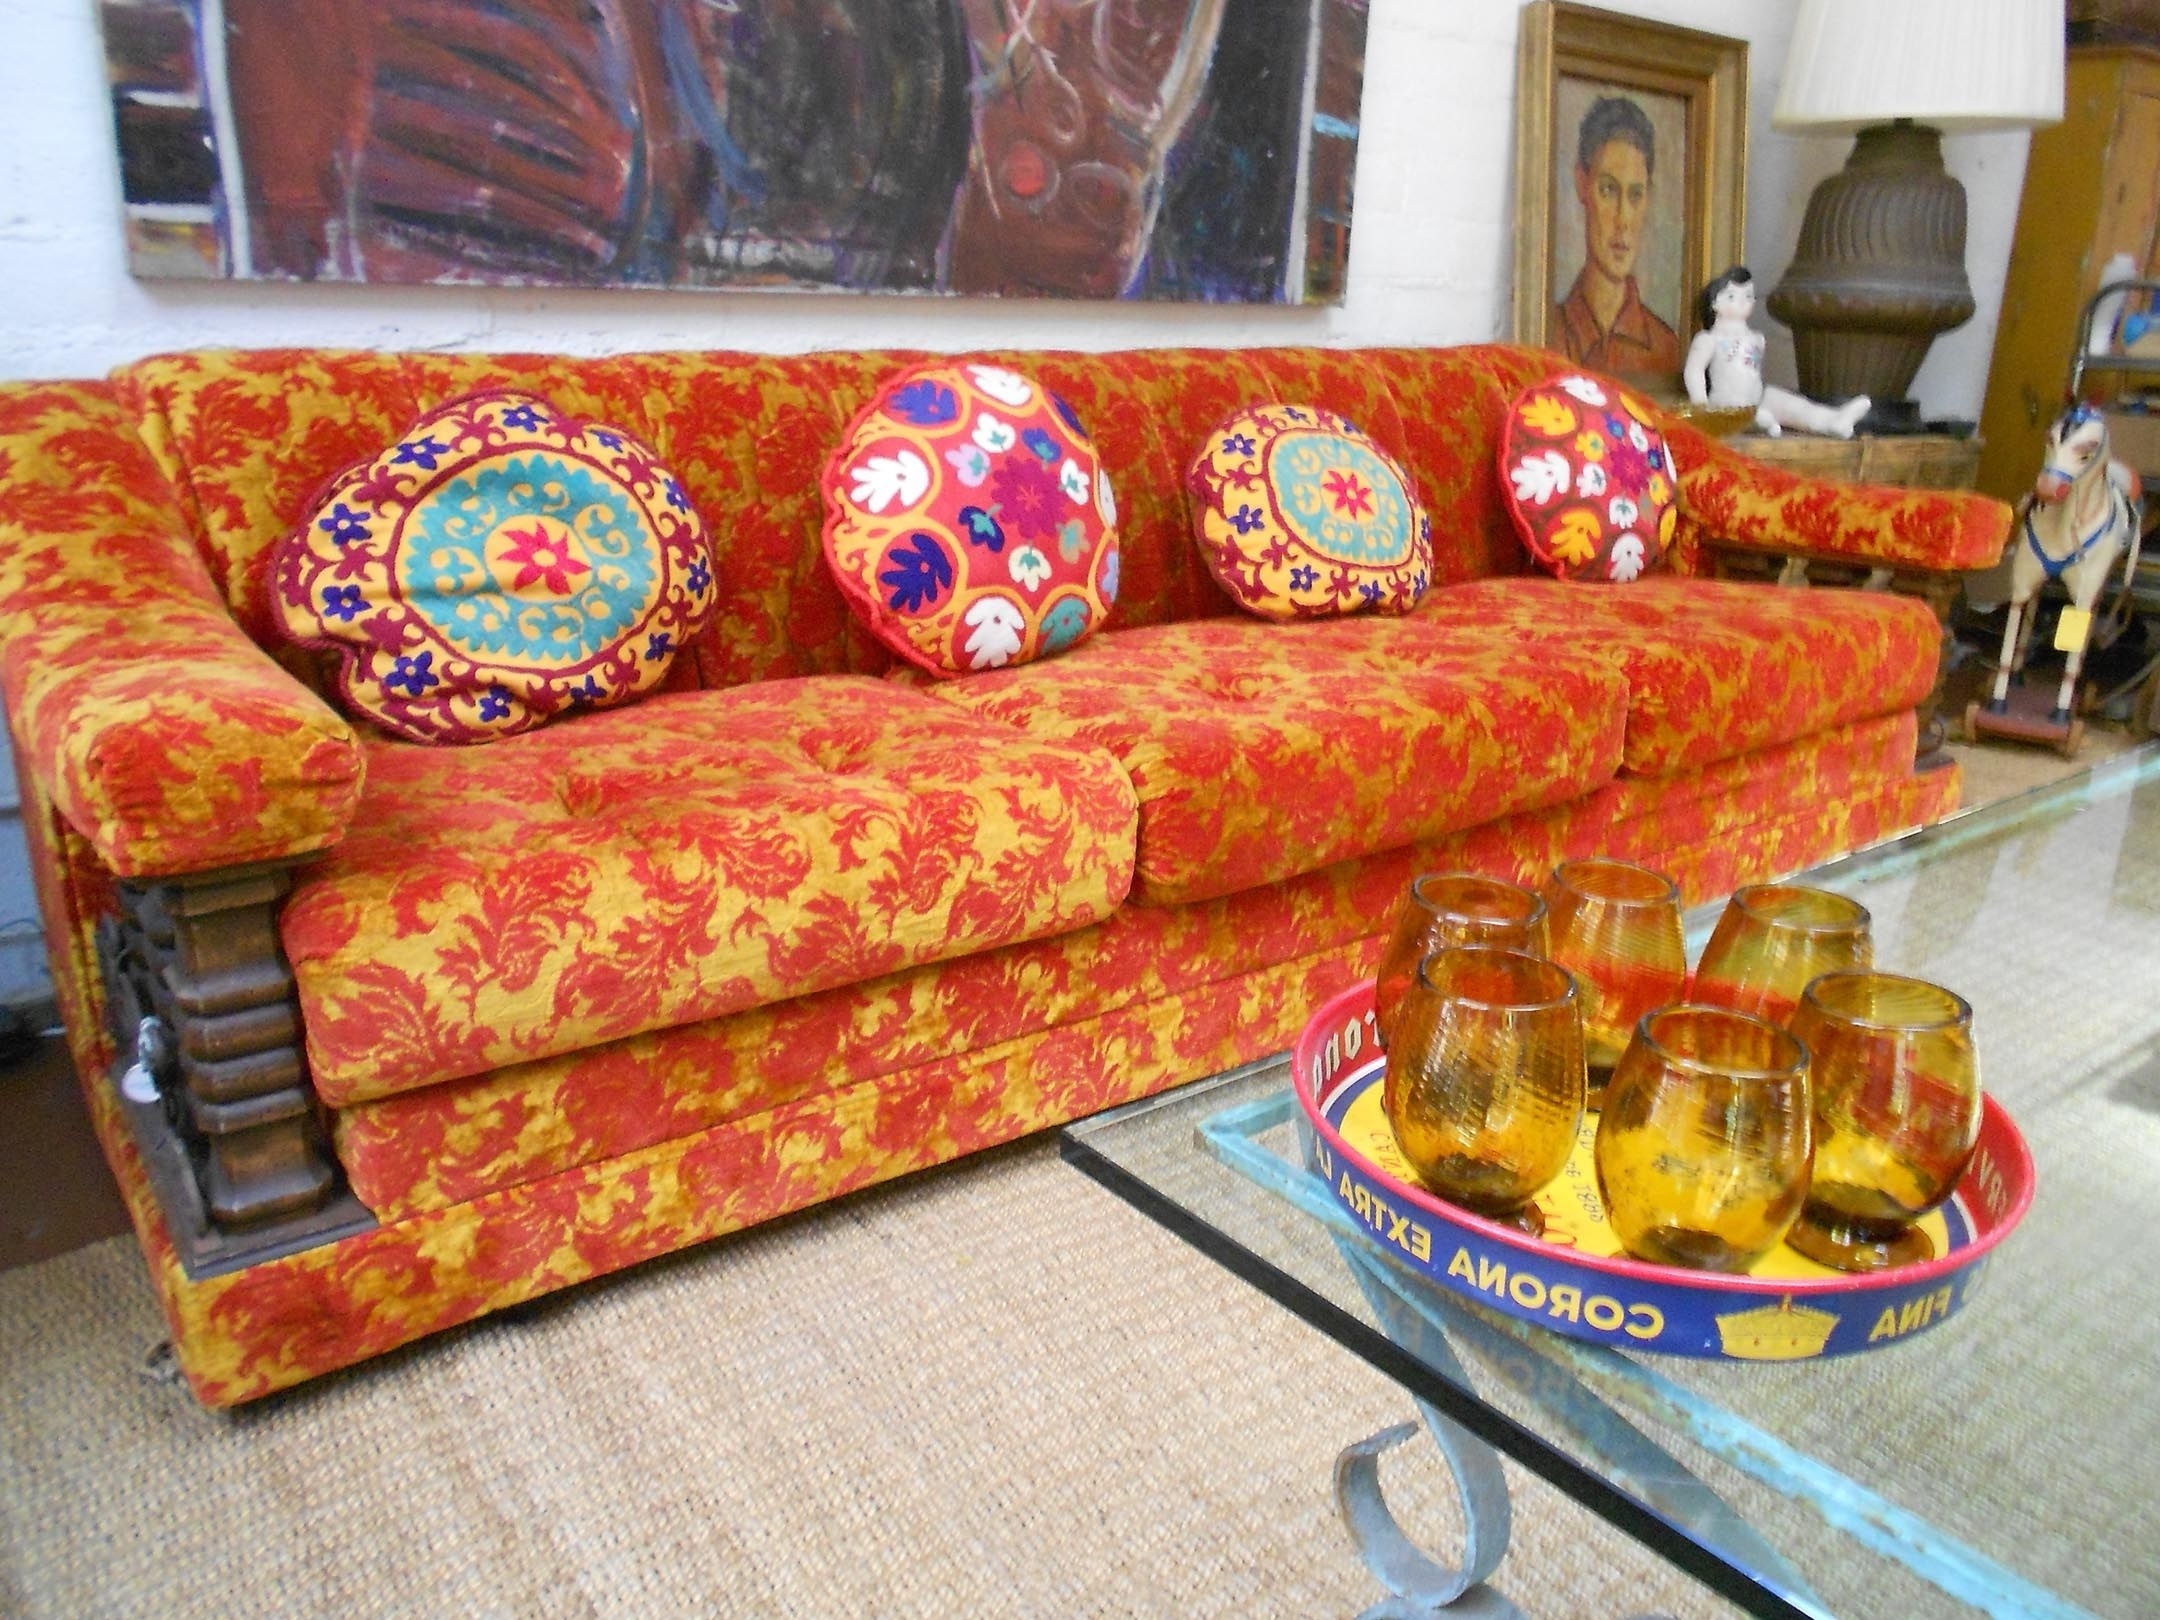 Sears Sofas Pertaining To Fashionable Orange #red #brocade #sofa #1960's #uzbeki #pillows #handblown (View 10 of 15)